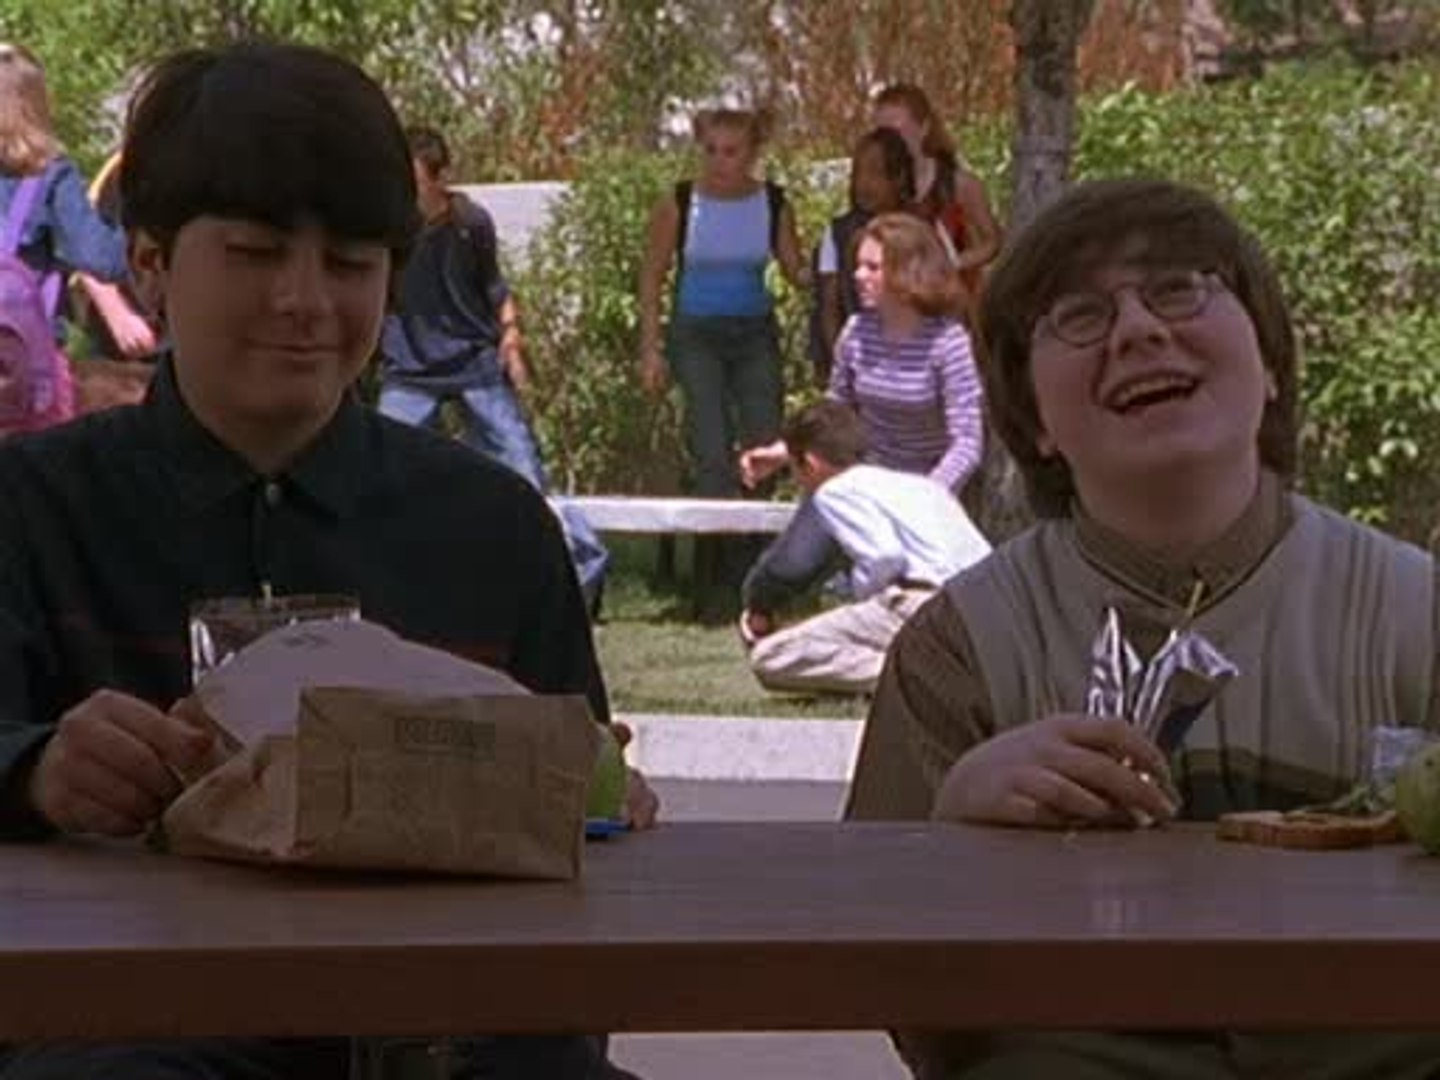 Malcolm in the Middle - S 3 E 4 - Malcolm's Girlfriend